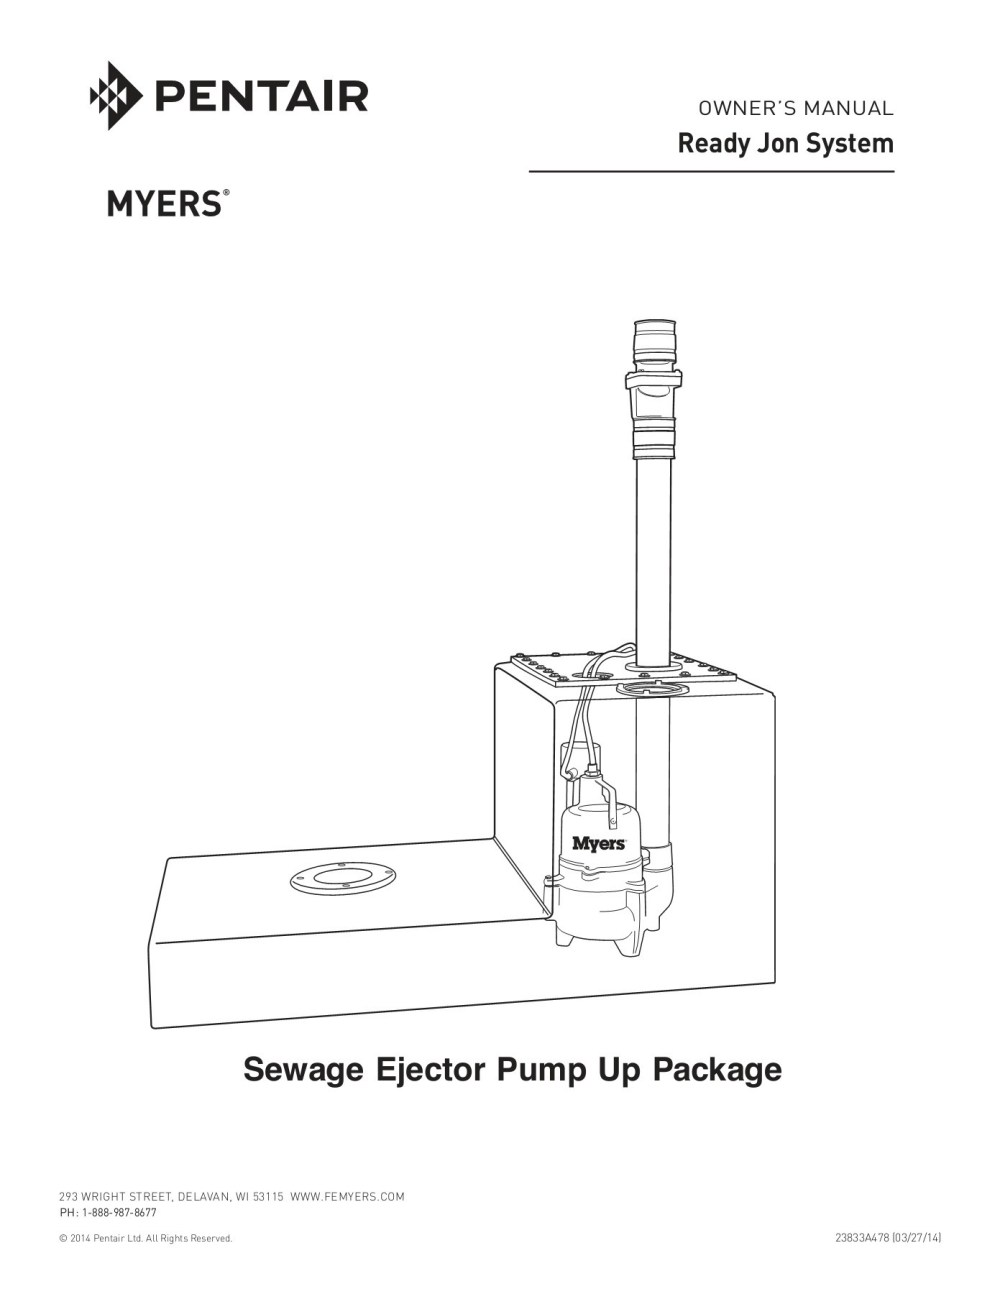 medium resolution of sewage ejector pump up package f e myers pages 1 12 text version fliphtml5